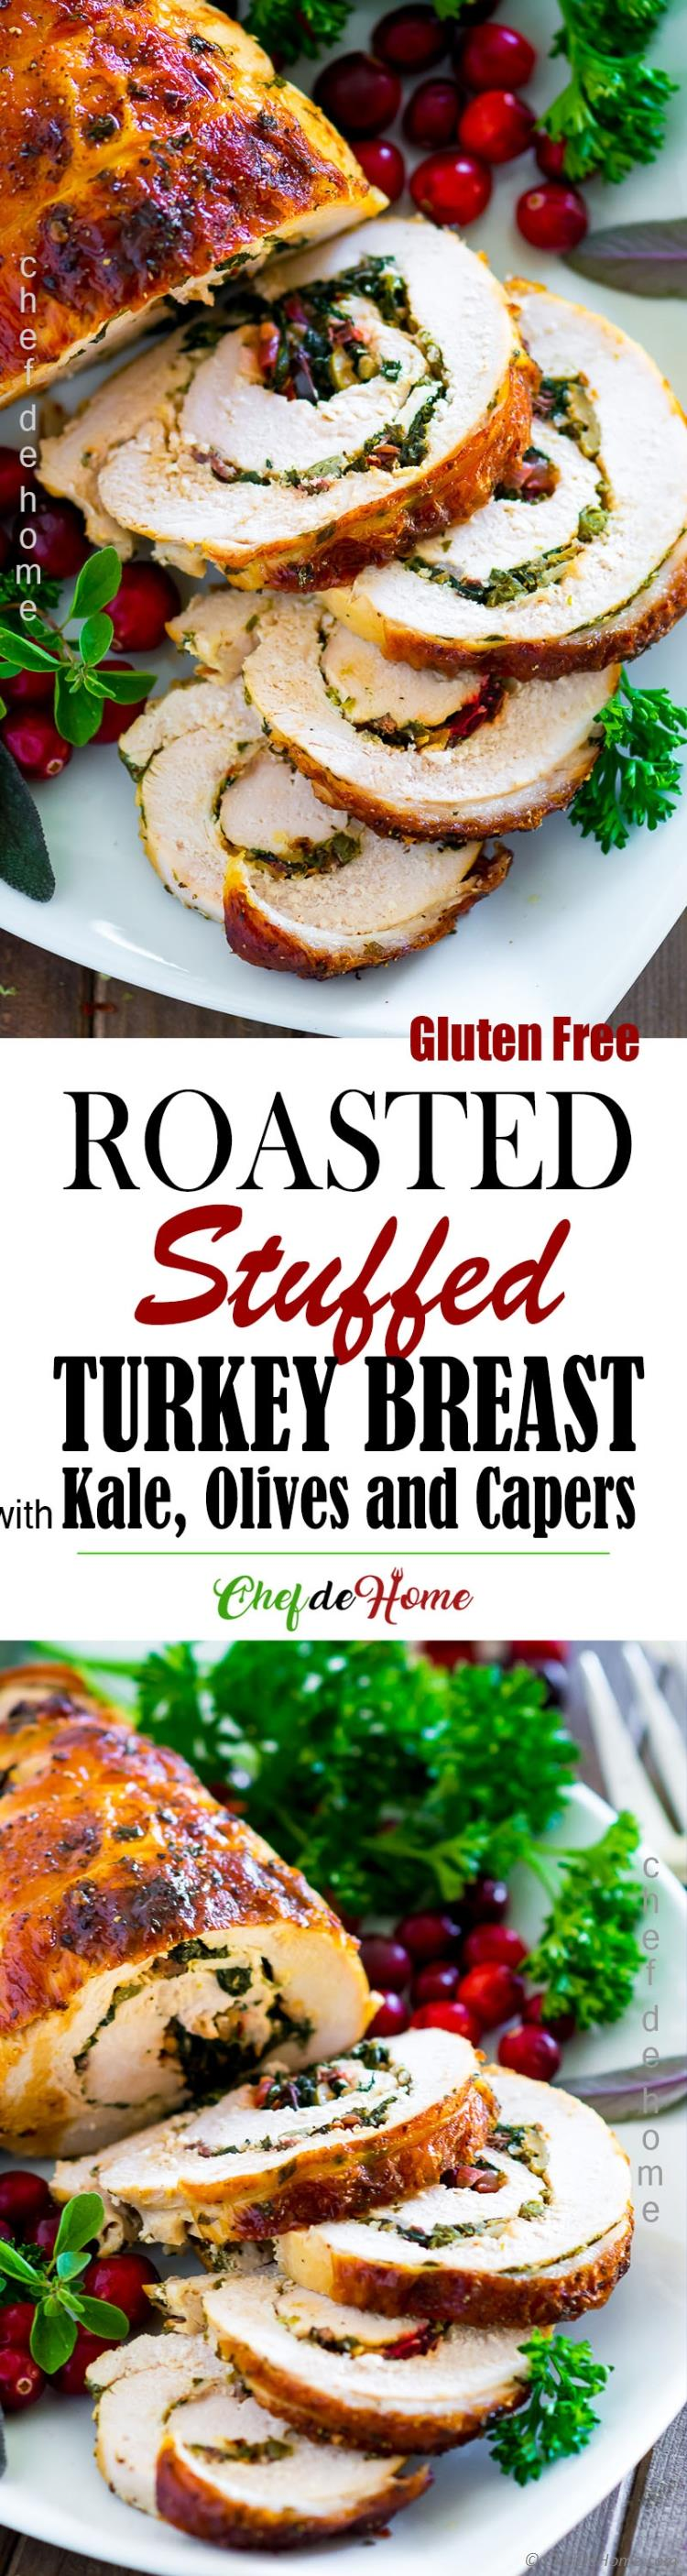 Juicy Stuffed Sliced Turkey Breast Long Picture